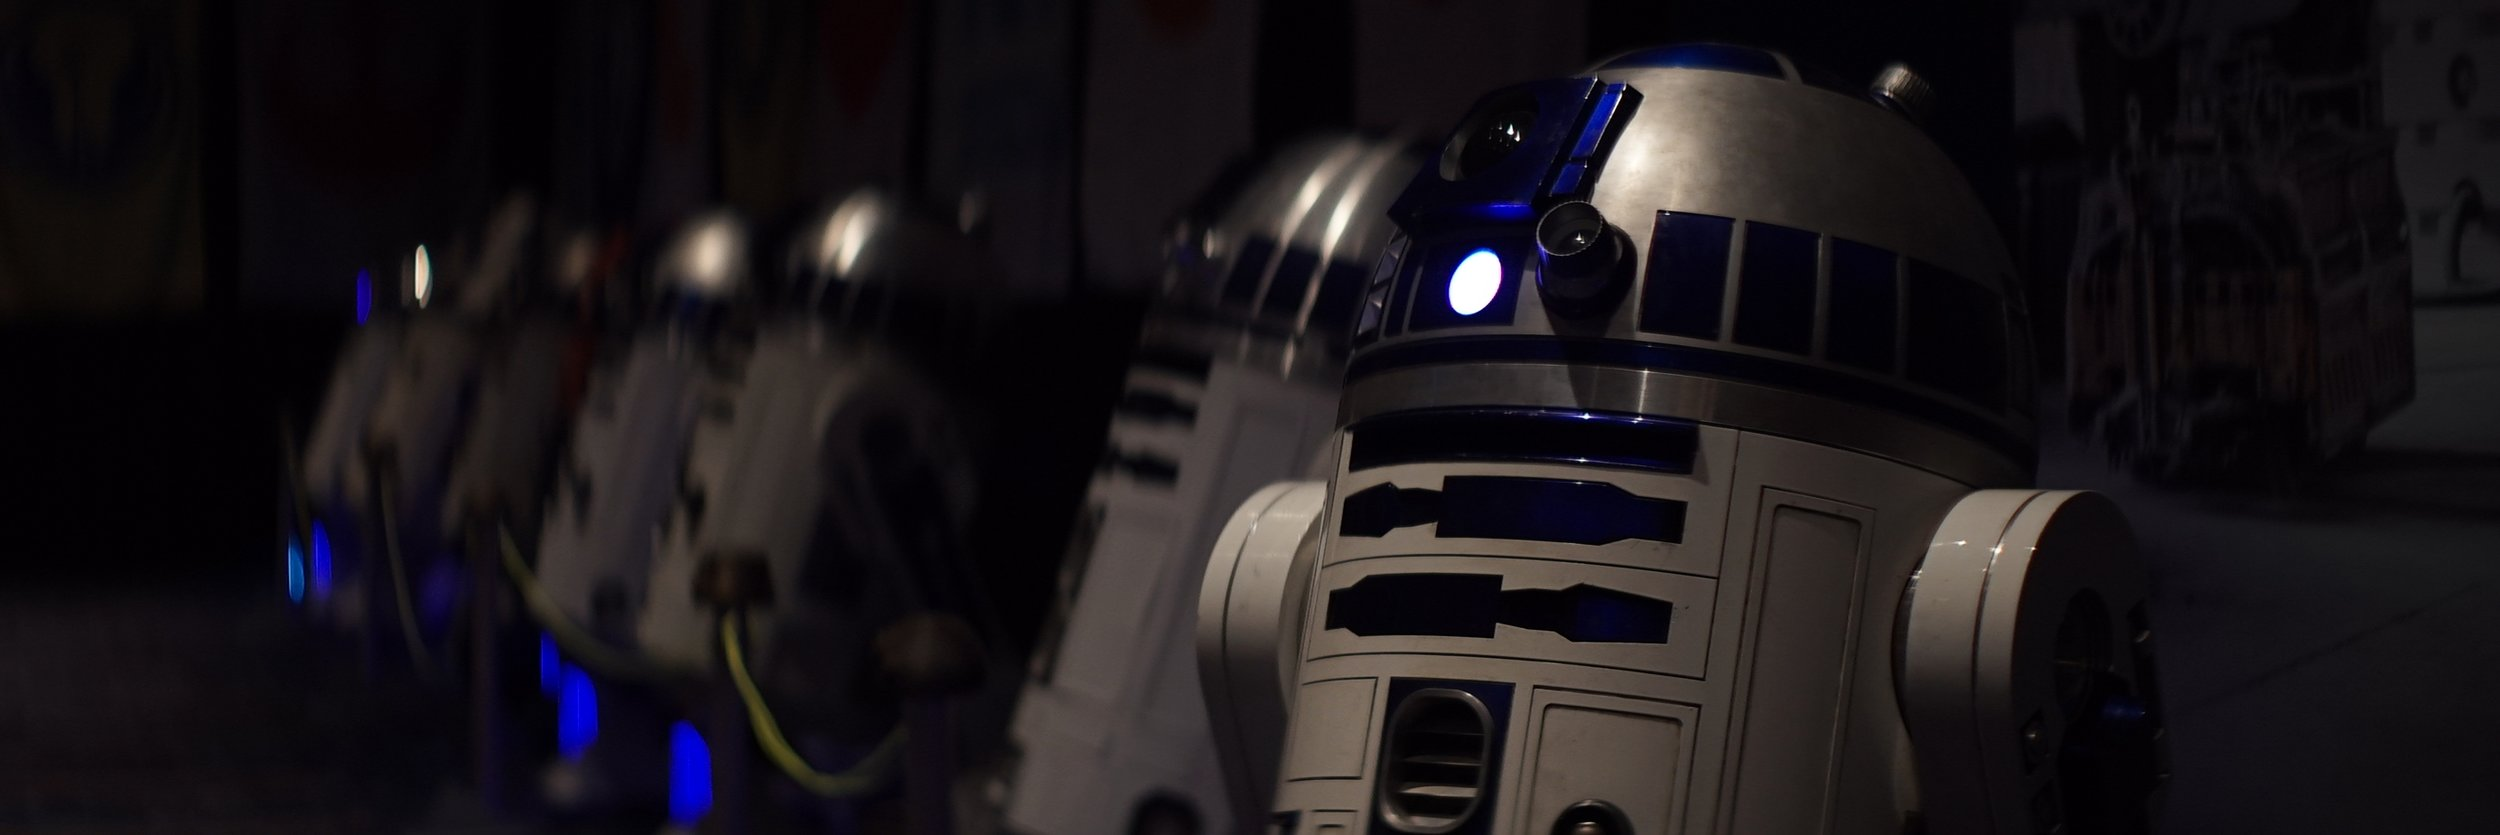 R2 Perspective